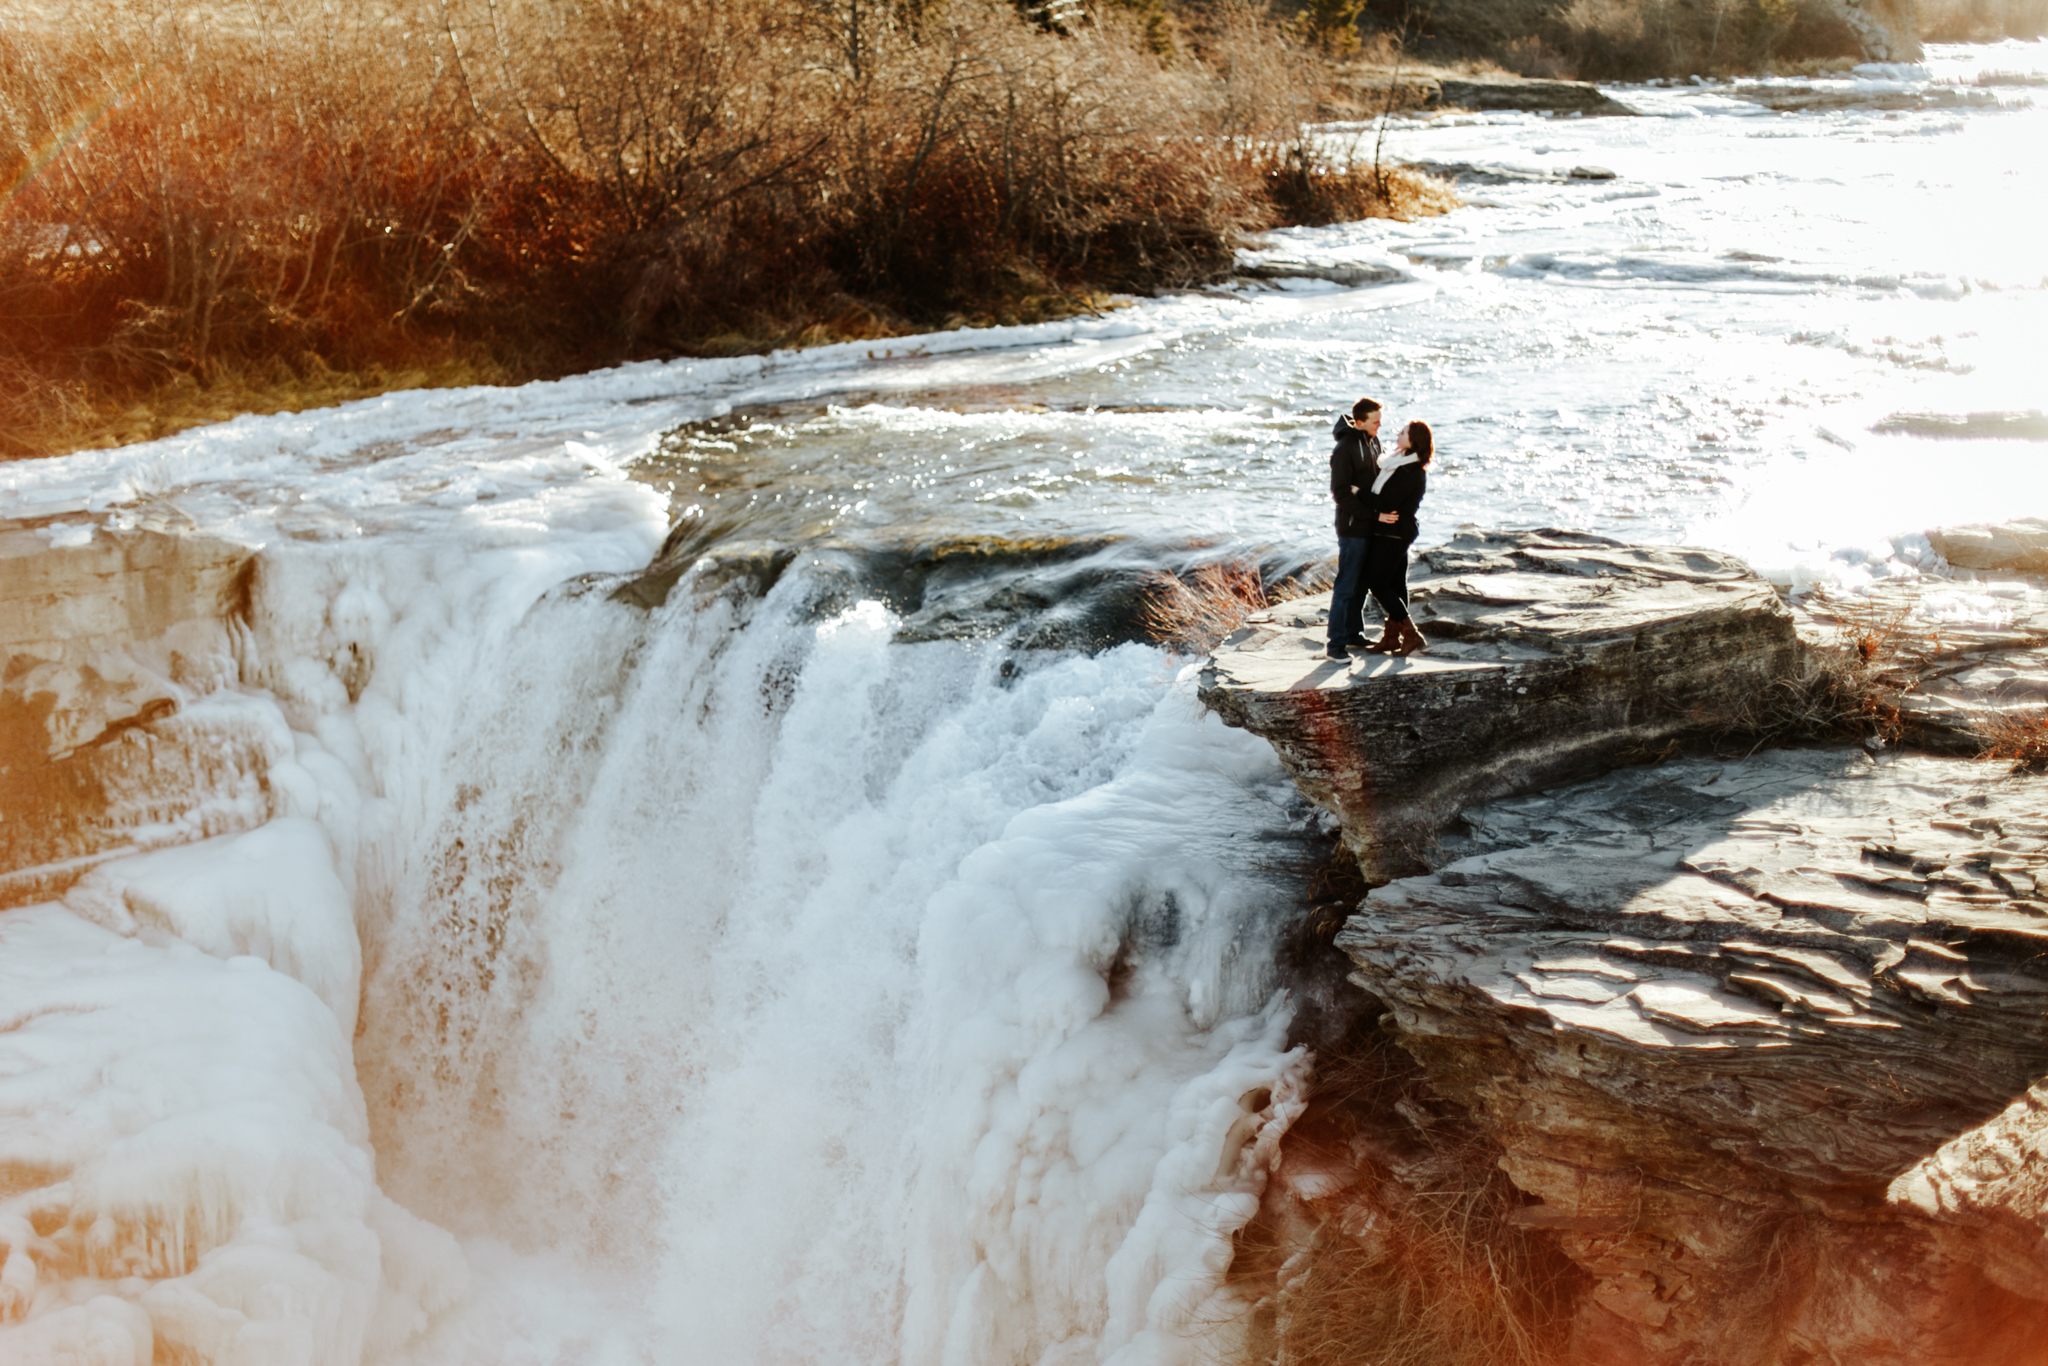 lethbridge-photographer-love-and-be-loved-photography-lundbreck-falls-engagement-clarissa-clayton-picture-image-photo--37.jpg